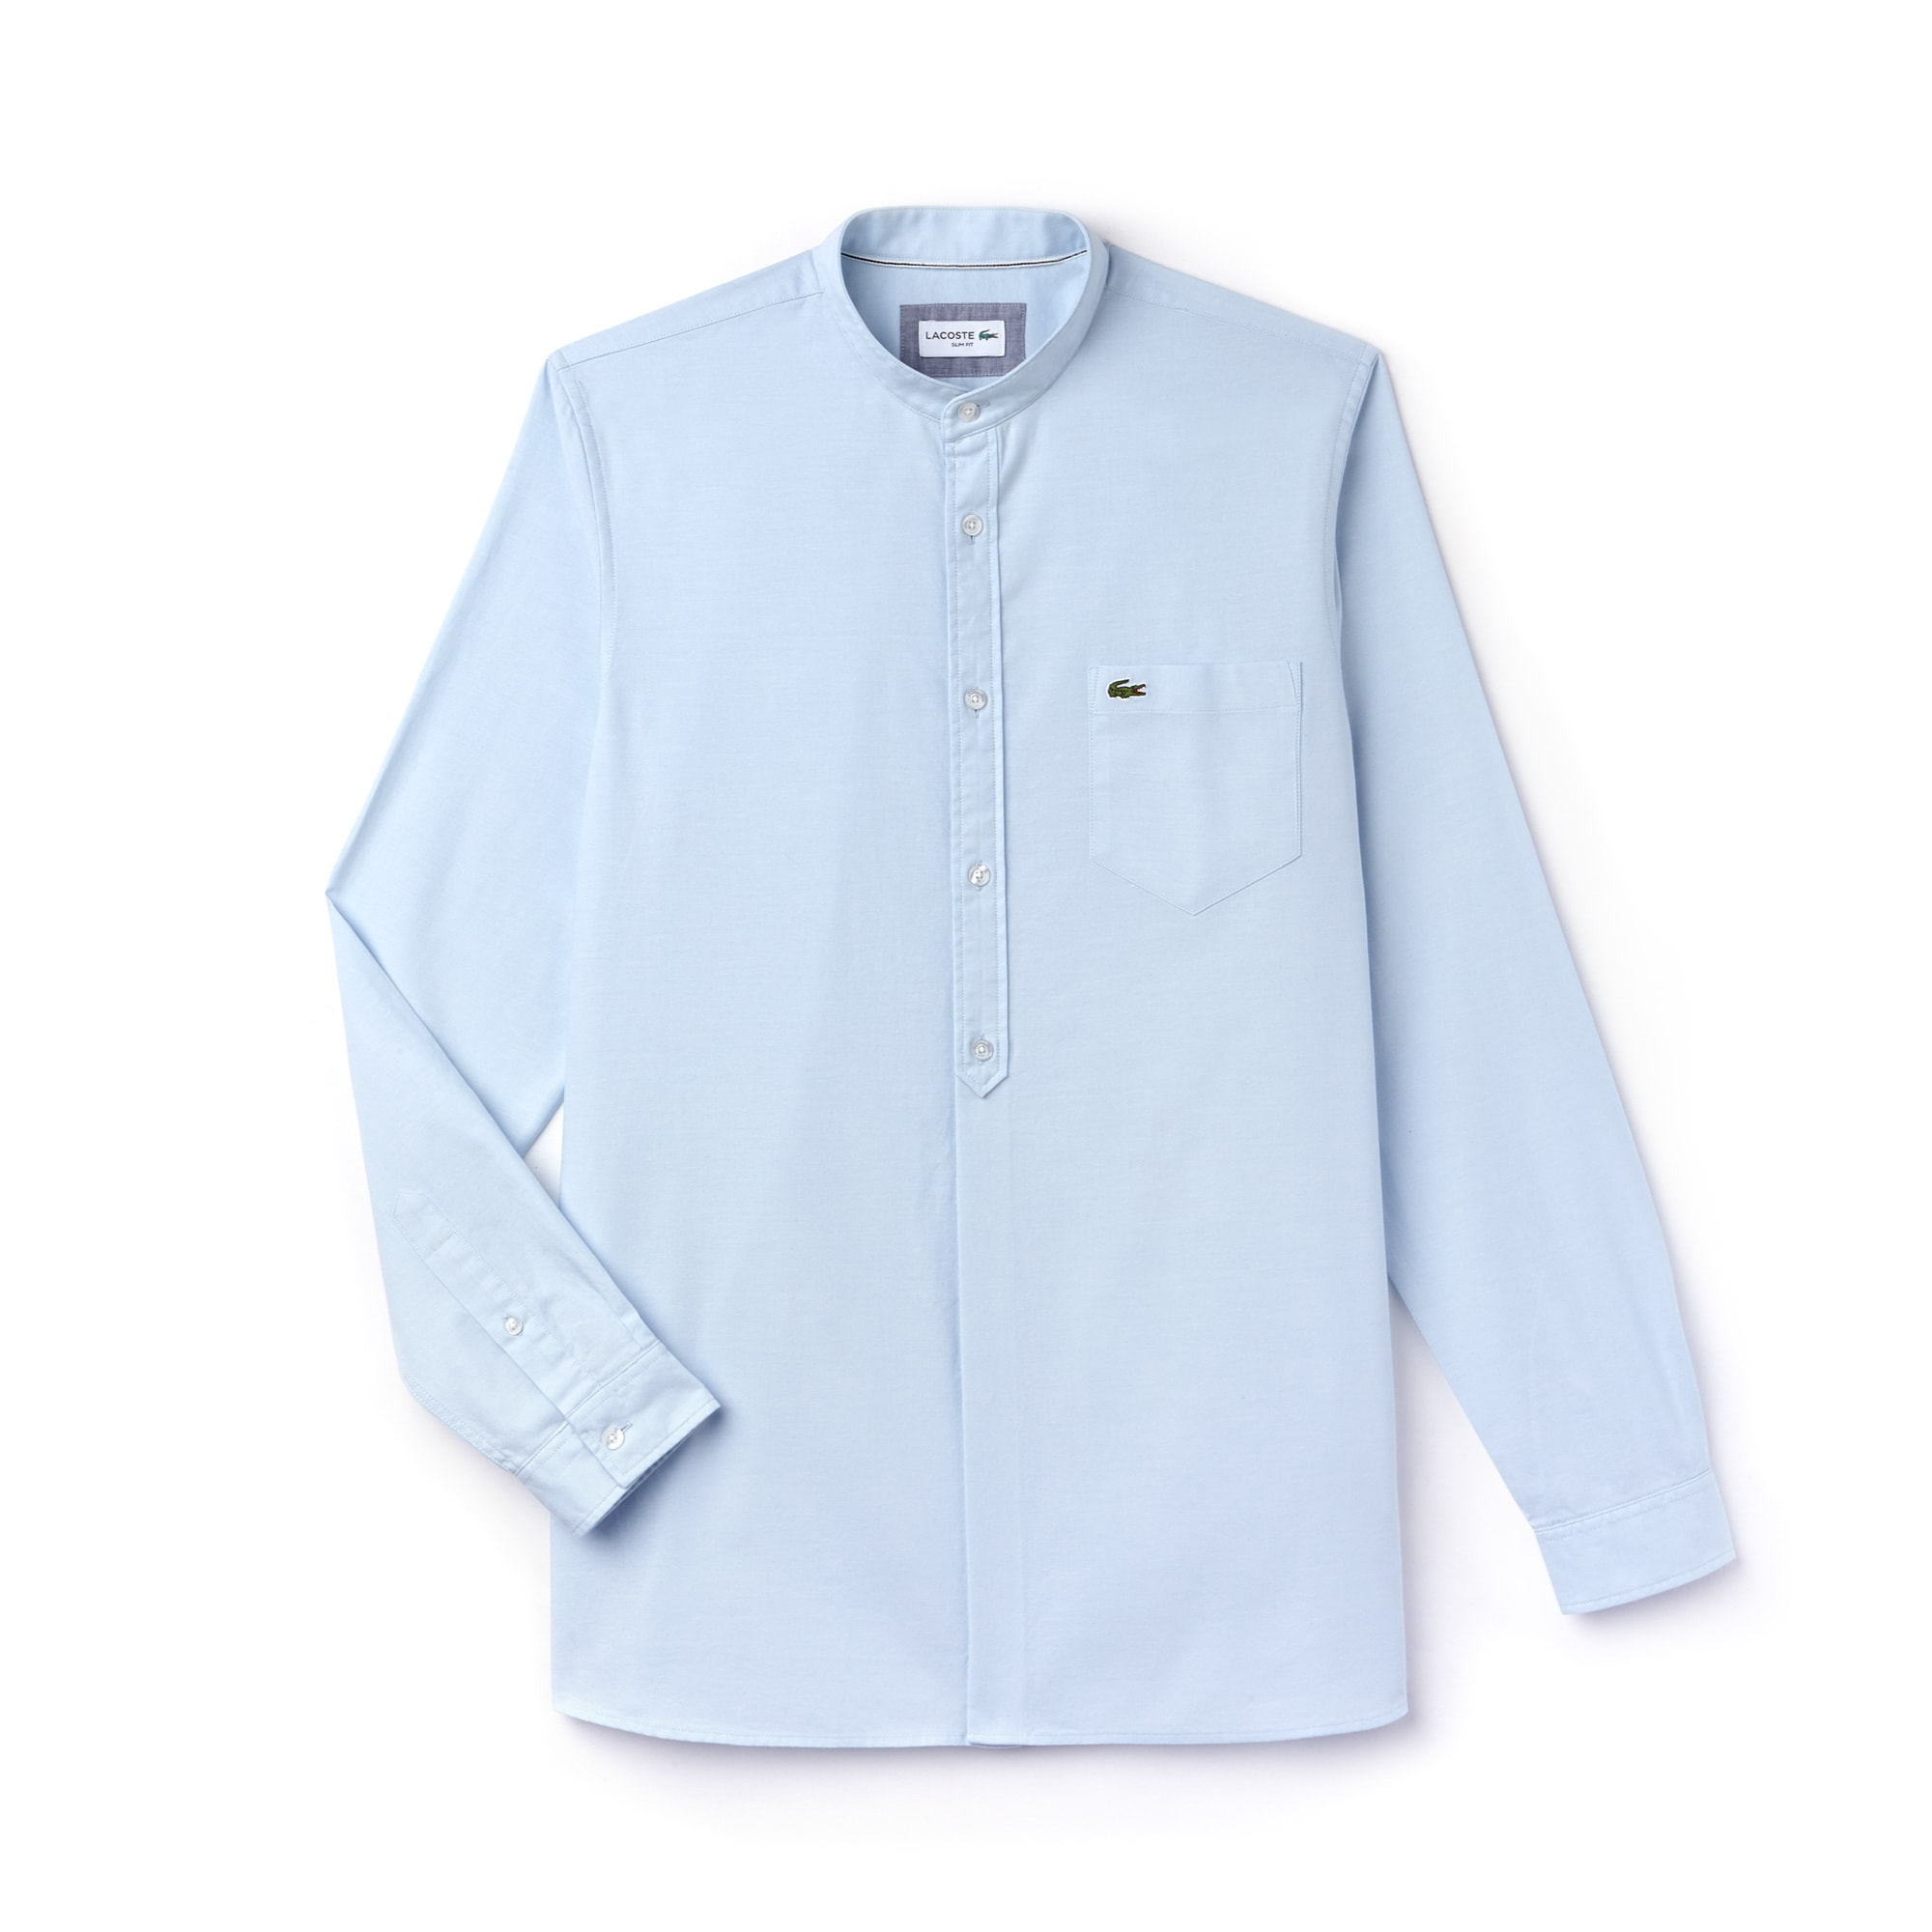 Men's Slim Fit Cotton Chambray Shirt